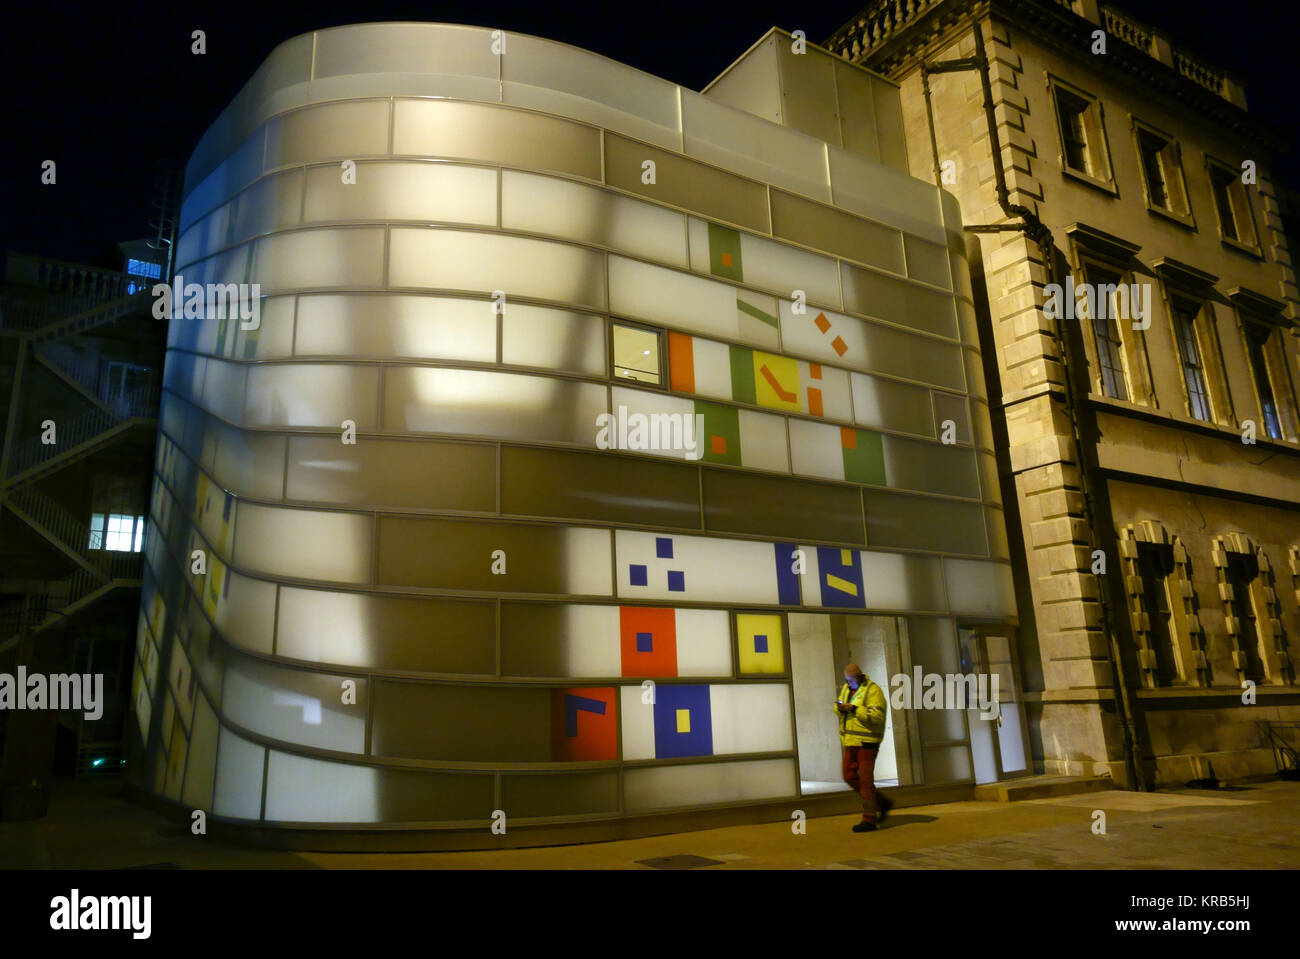 Maggie's Centre for cancer patients at St Bartholomew's Hospital, London by architect Steven Holl - Stock Image